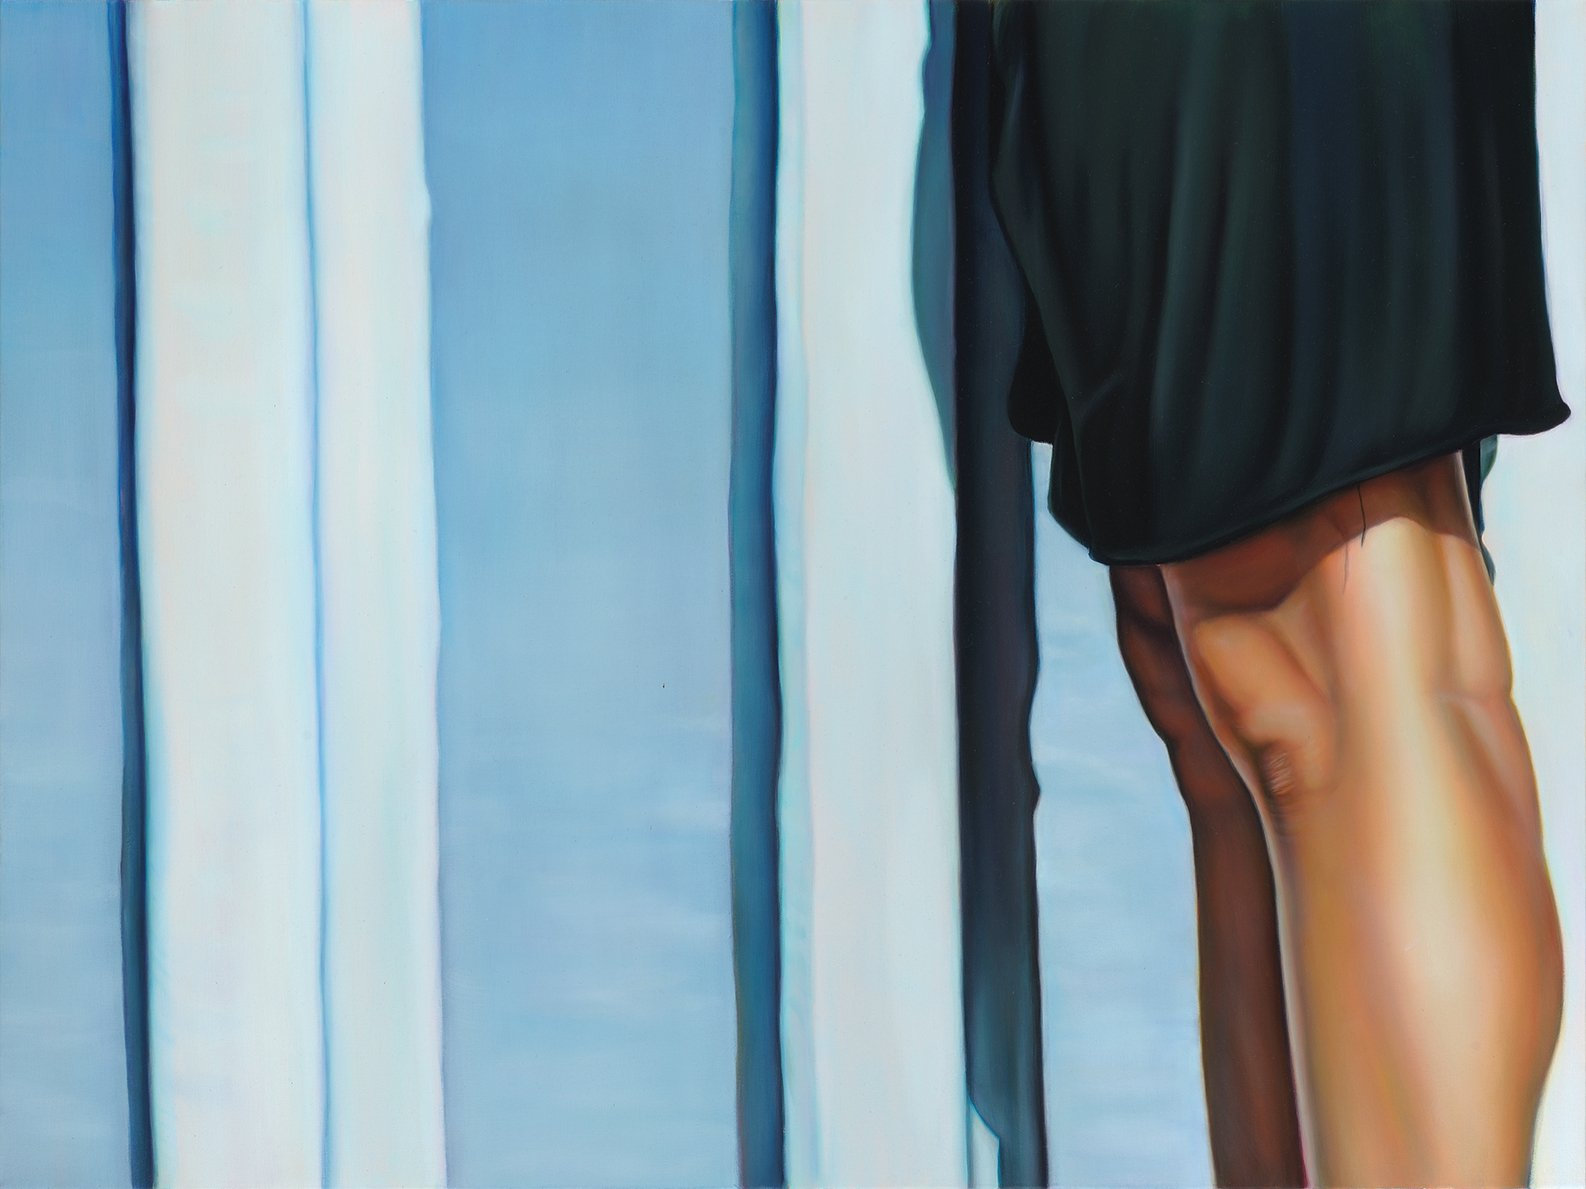 Painting of a woman's legs, close up and clothed in a black skirt, standing against the Mexican-American border wall